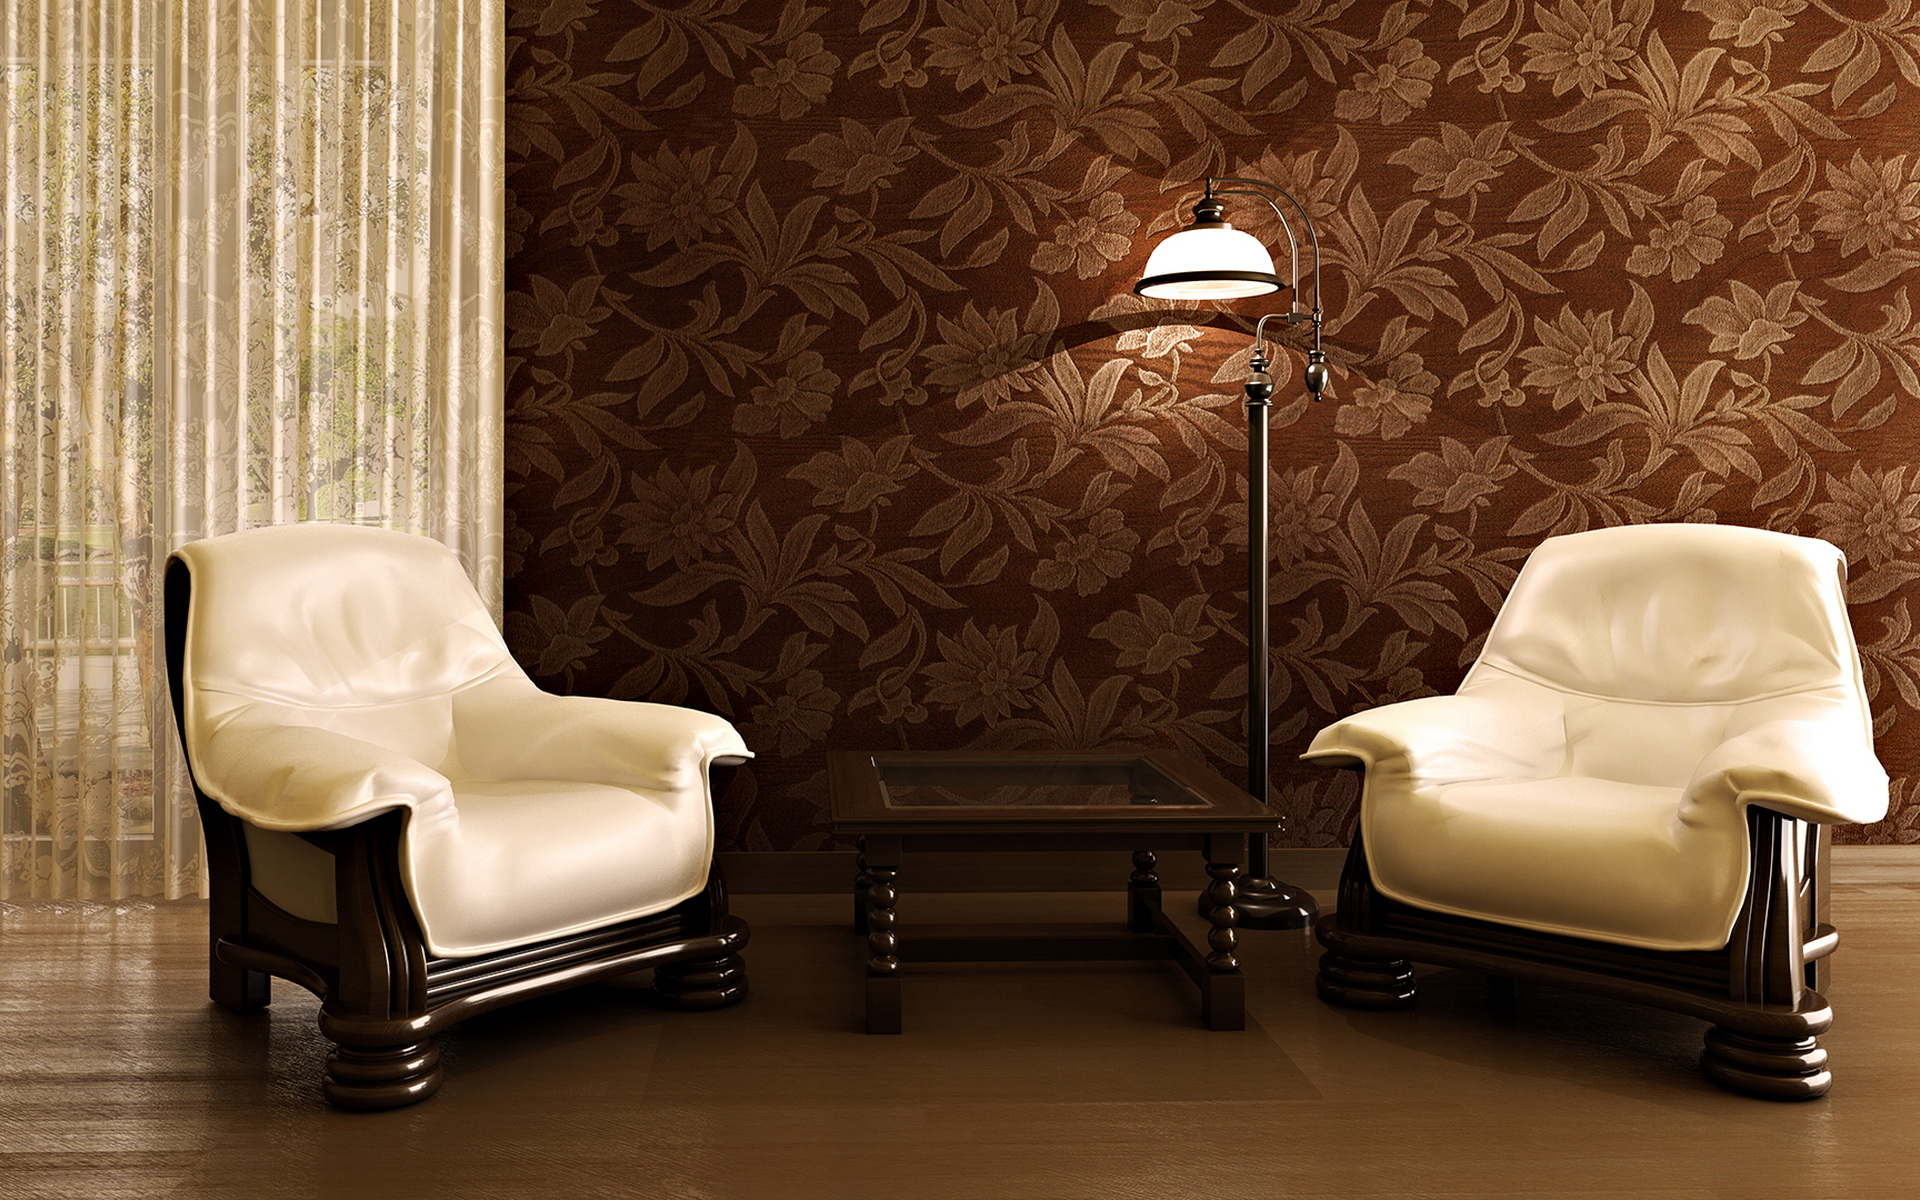 Wallpaper Design For Living Room That Can Liven Up The